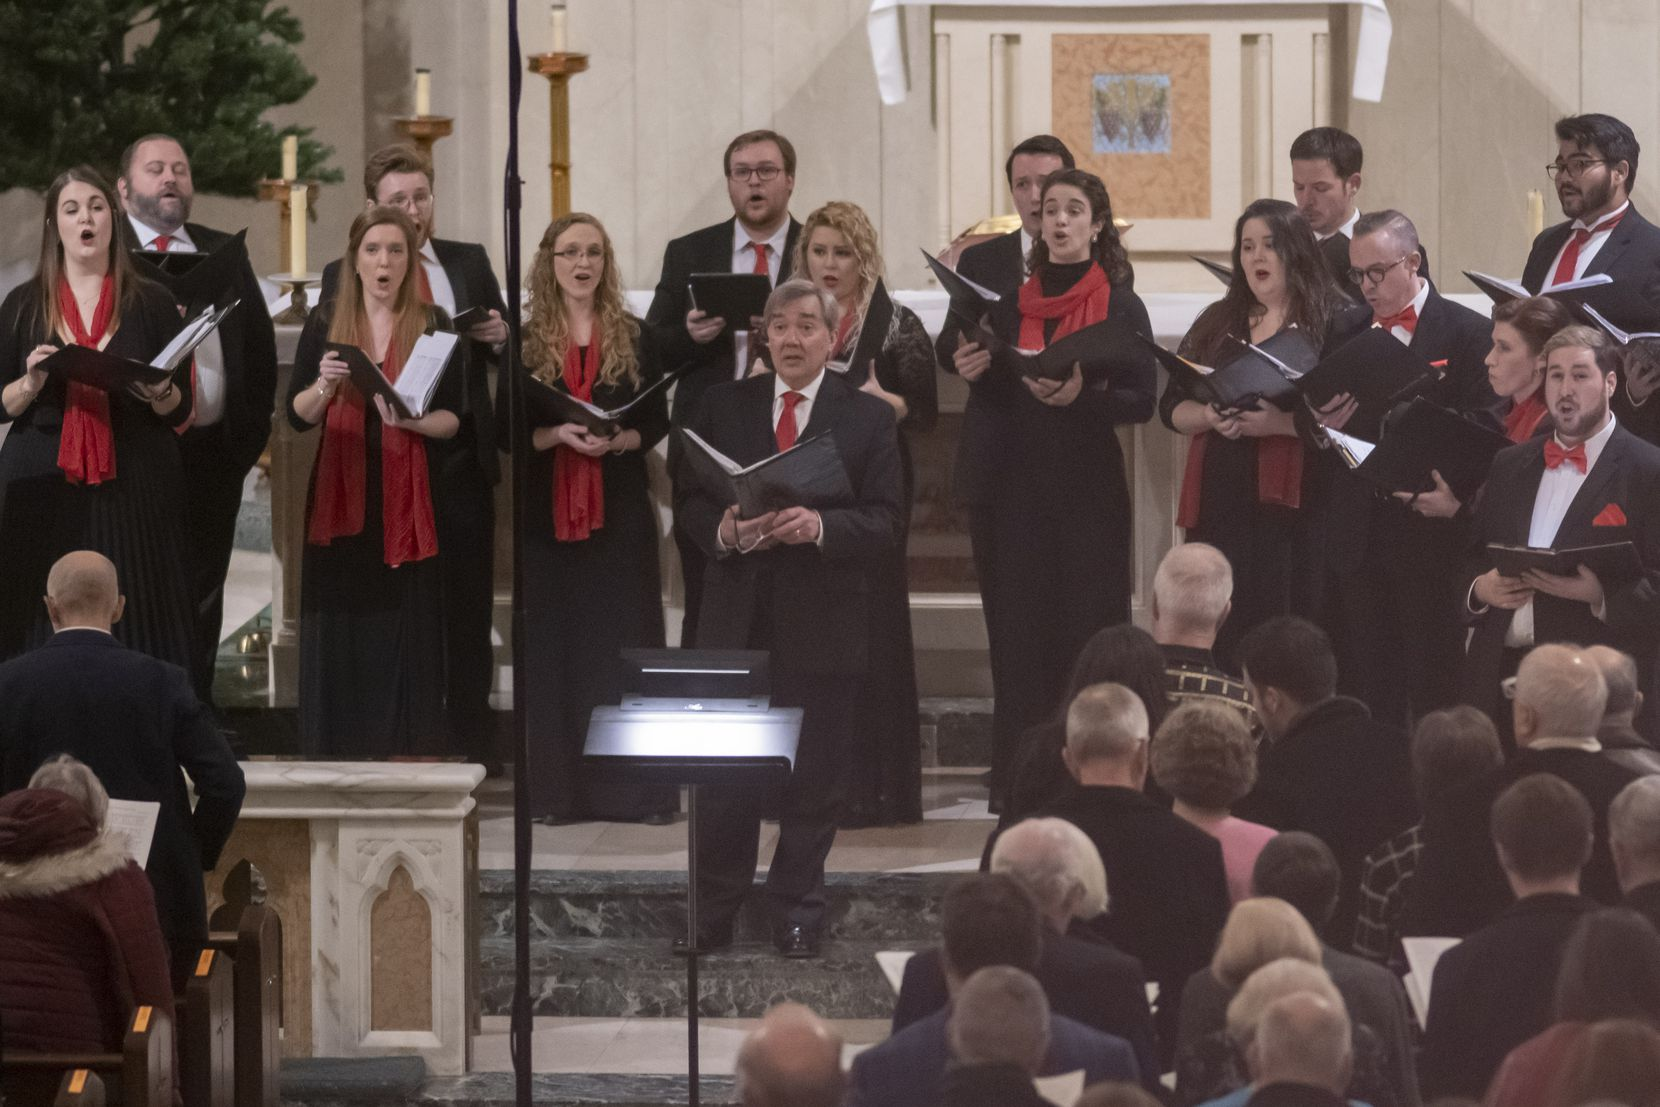 The Orpheus Chamber Singers perform their Christmas program at St. Thomas Aquinas Catholic Church on December 21, 2019 in Dallas, Texas.